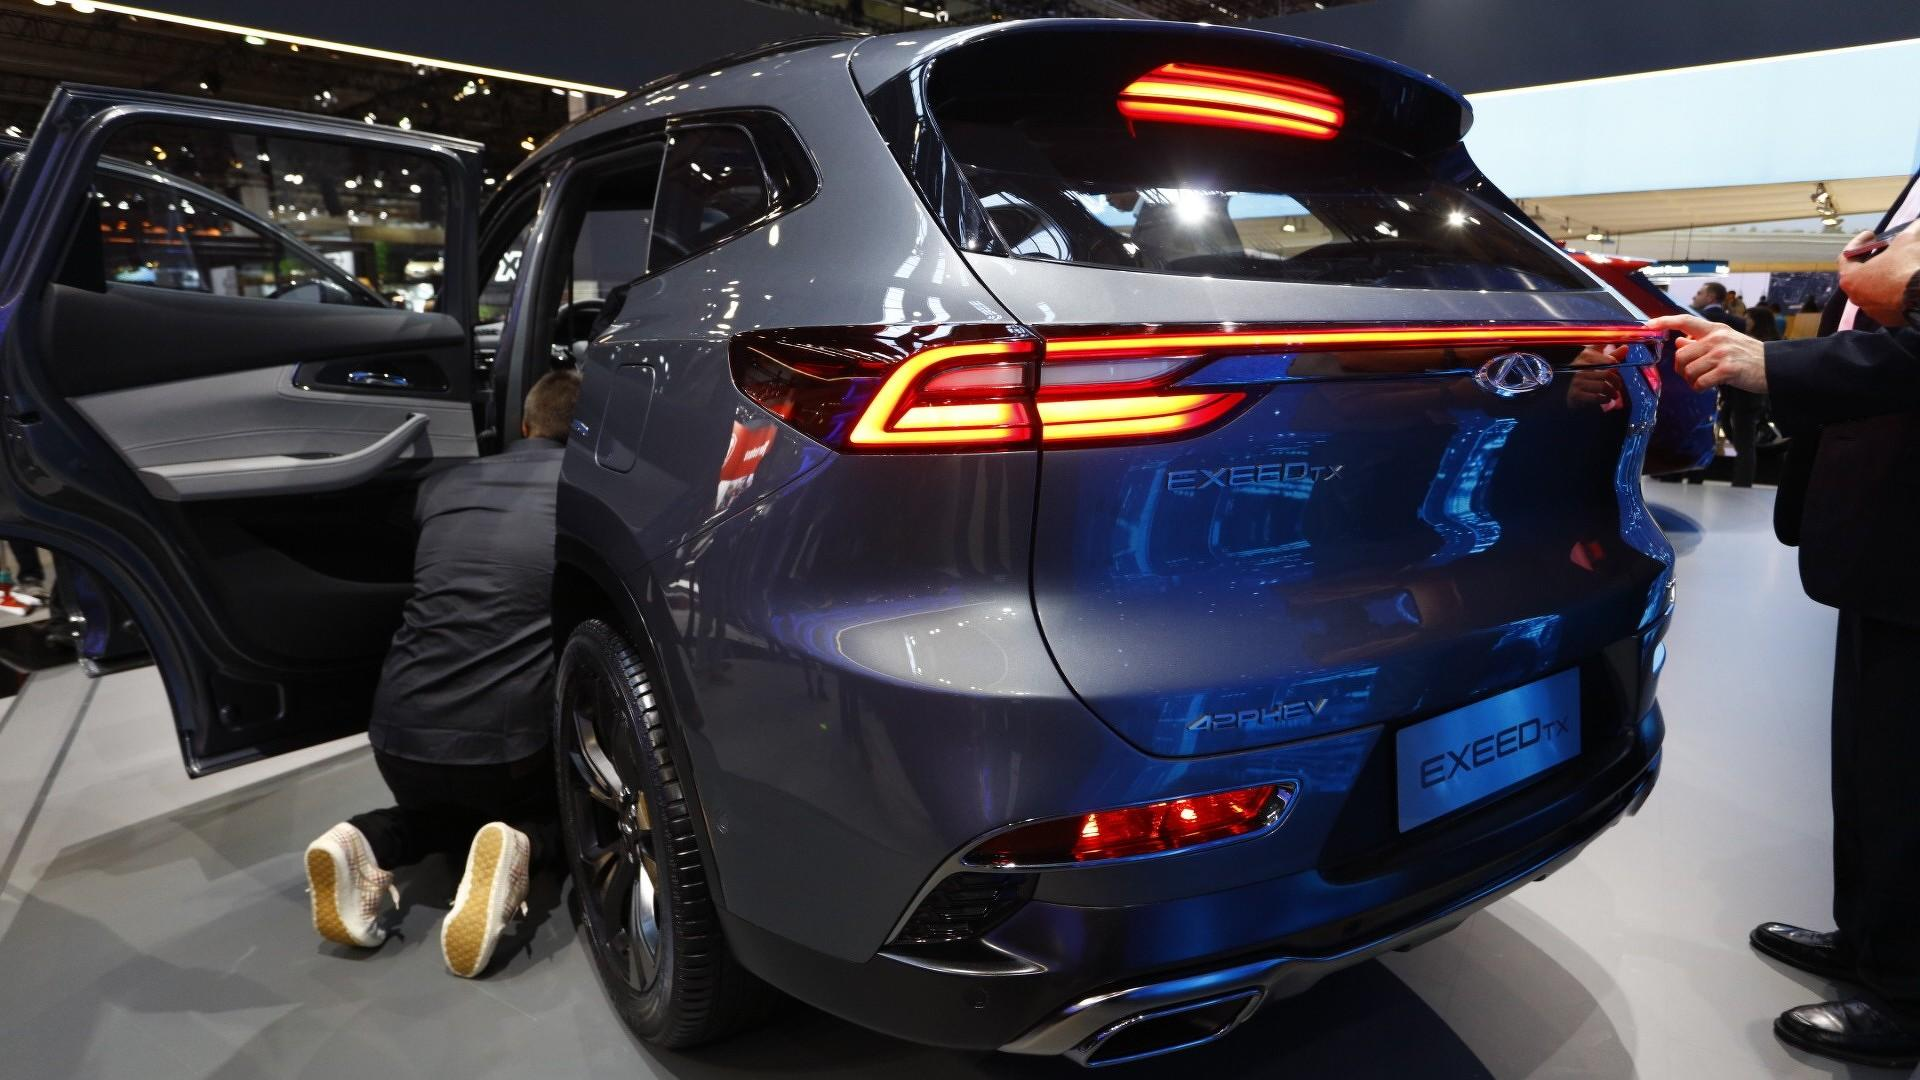 China's Chery Launches In Europe With Exeed Brand, Hybrid SUV